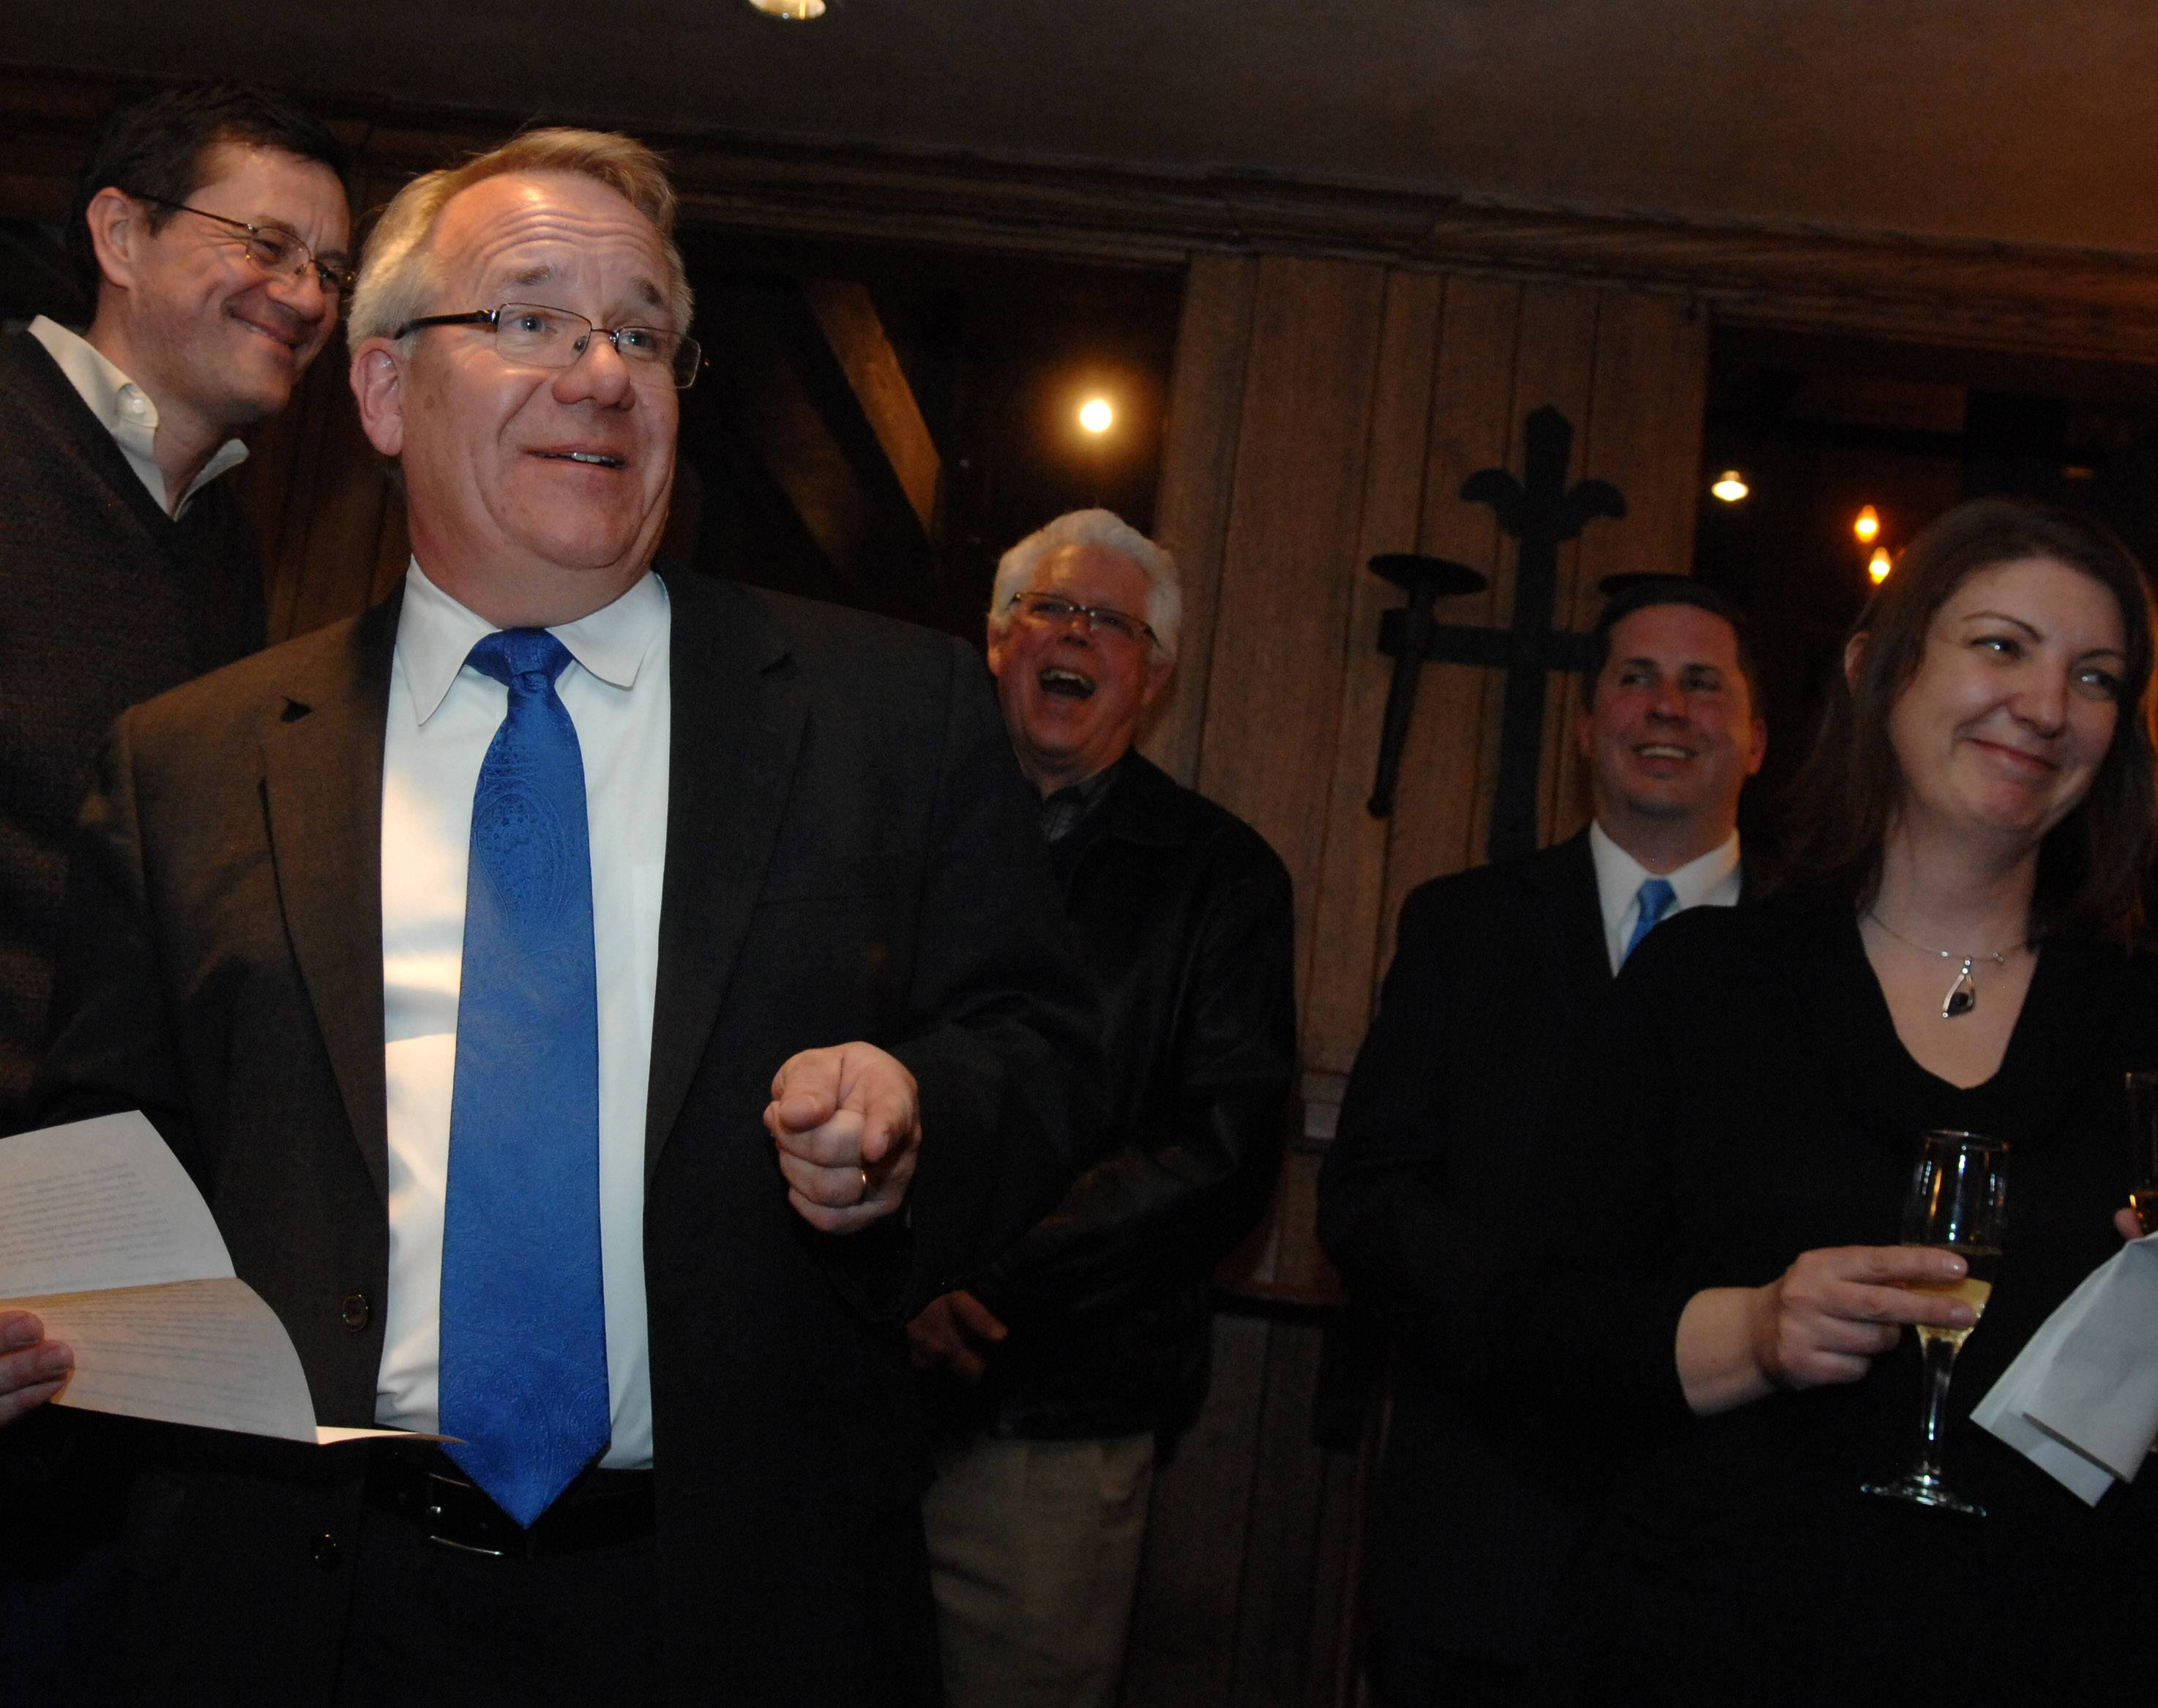 Steve Andersson of Geneva gets a laugh during his victory speech after winning the Republican nomination for state 65th House District representative Tuesday. His Election Night party was at Village Squire in South Elgin.